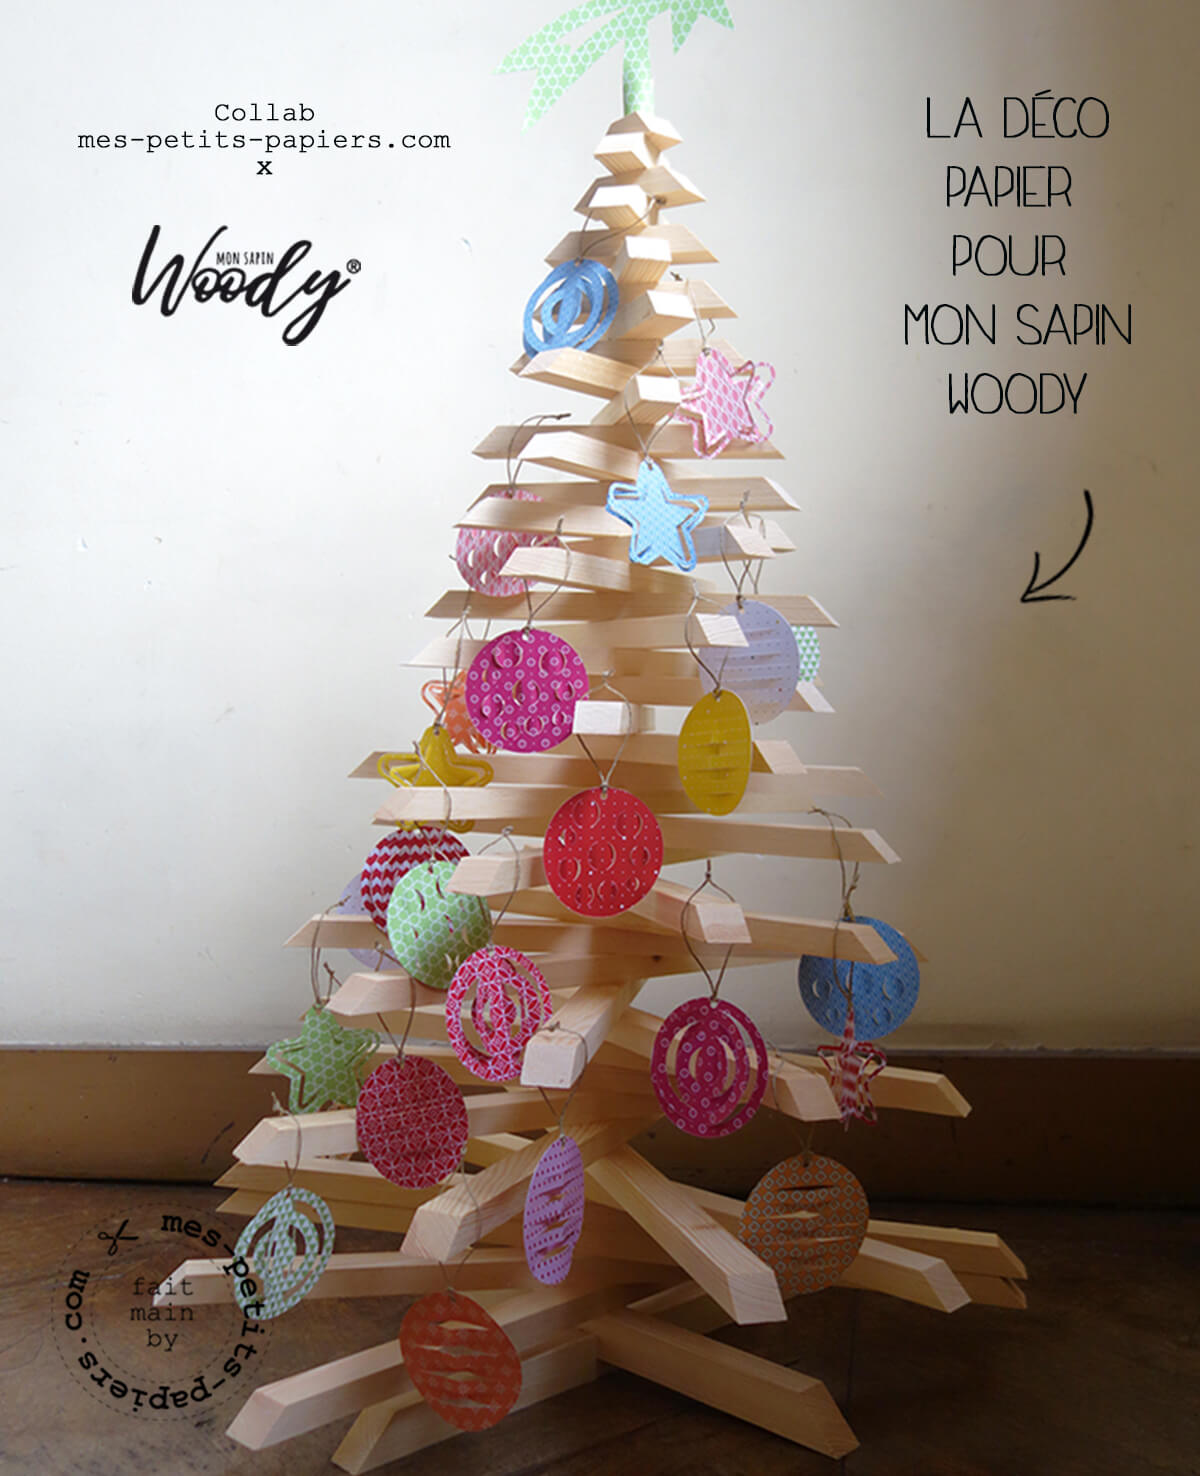 collab mes petits papiers pour mon sapin woody 4